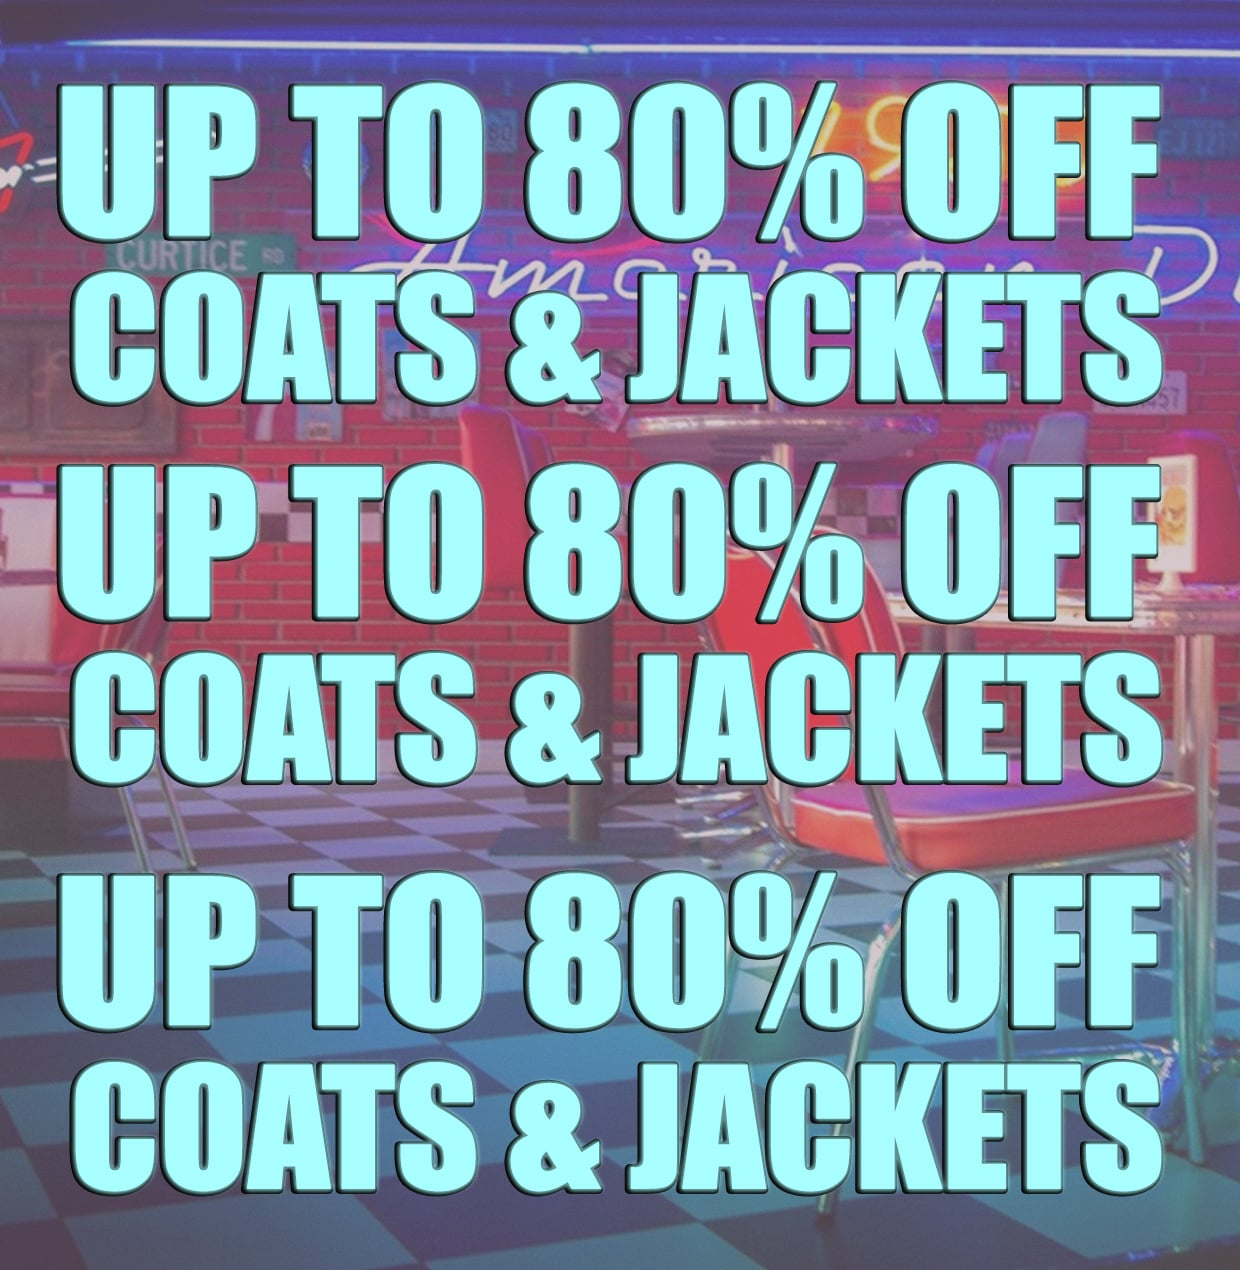 upto 80% off jackets